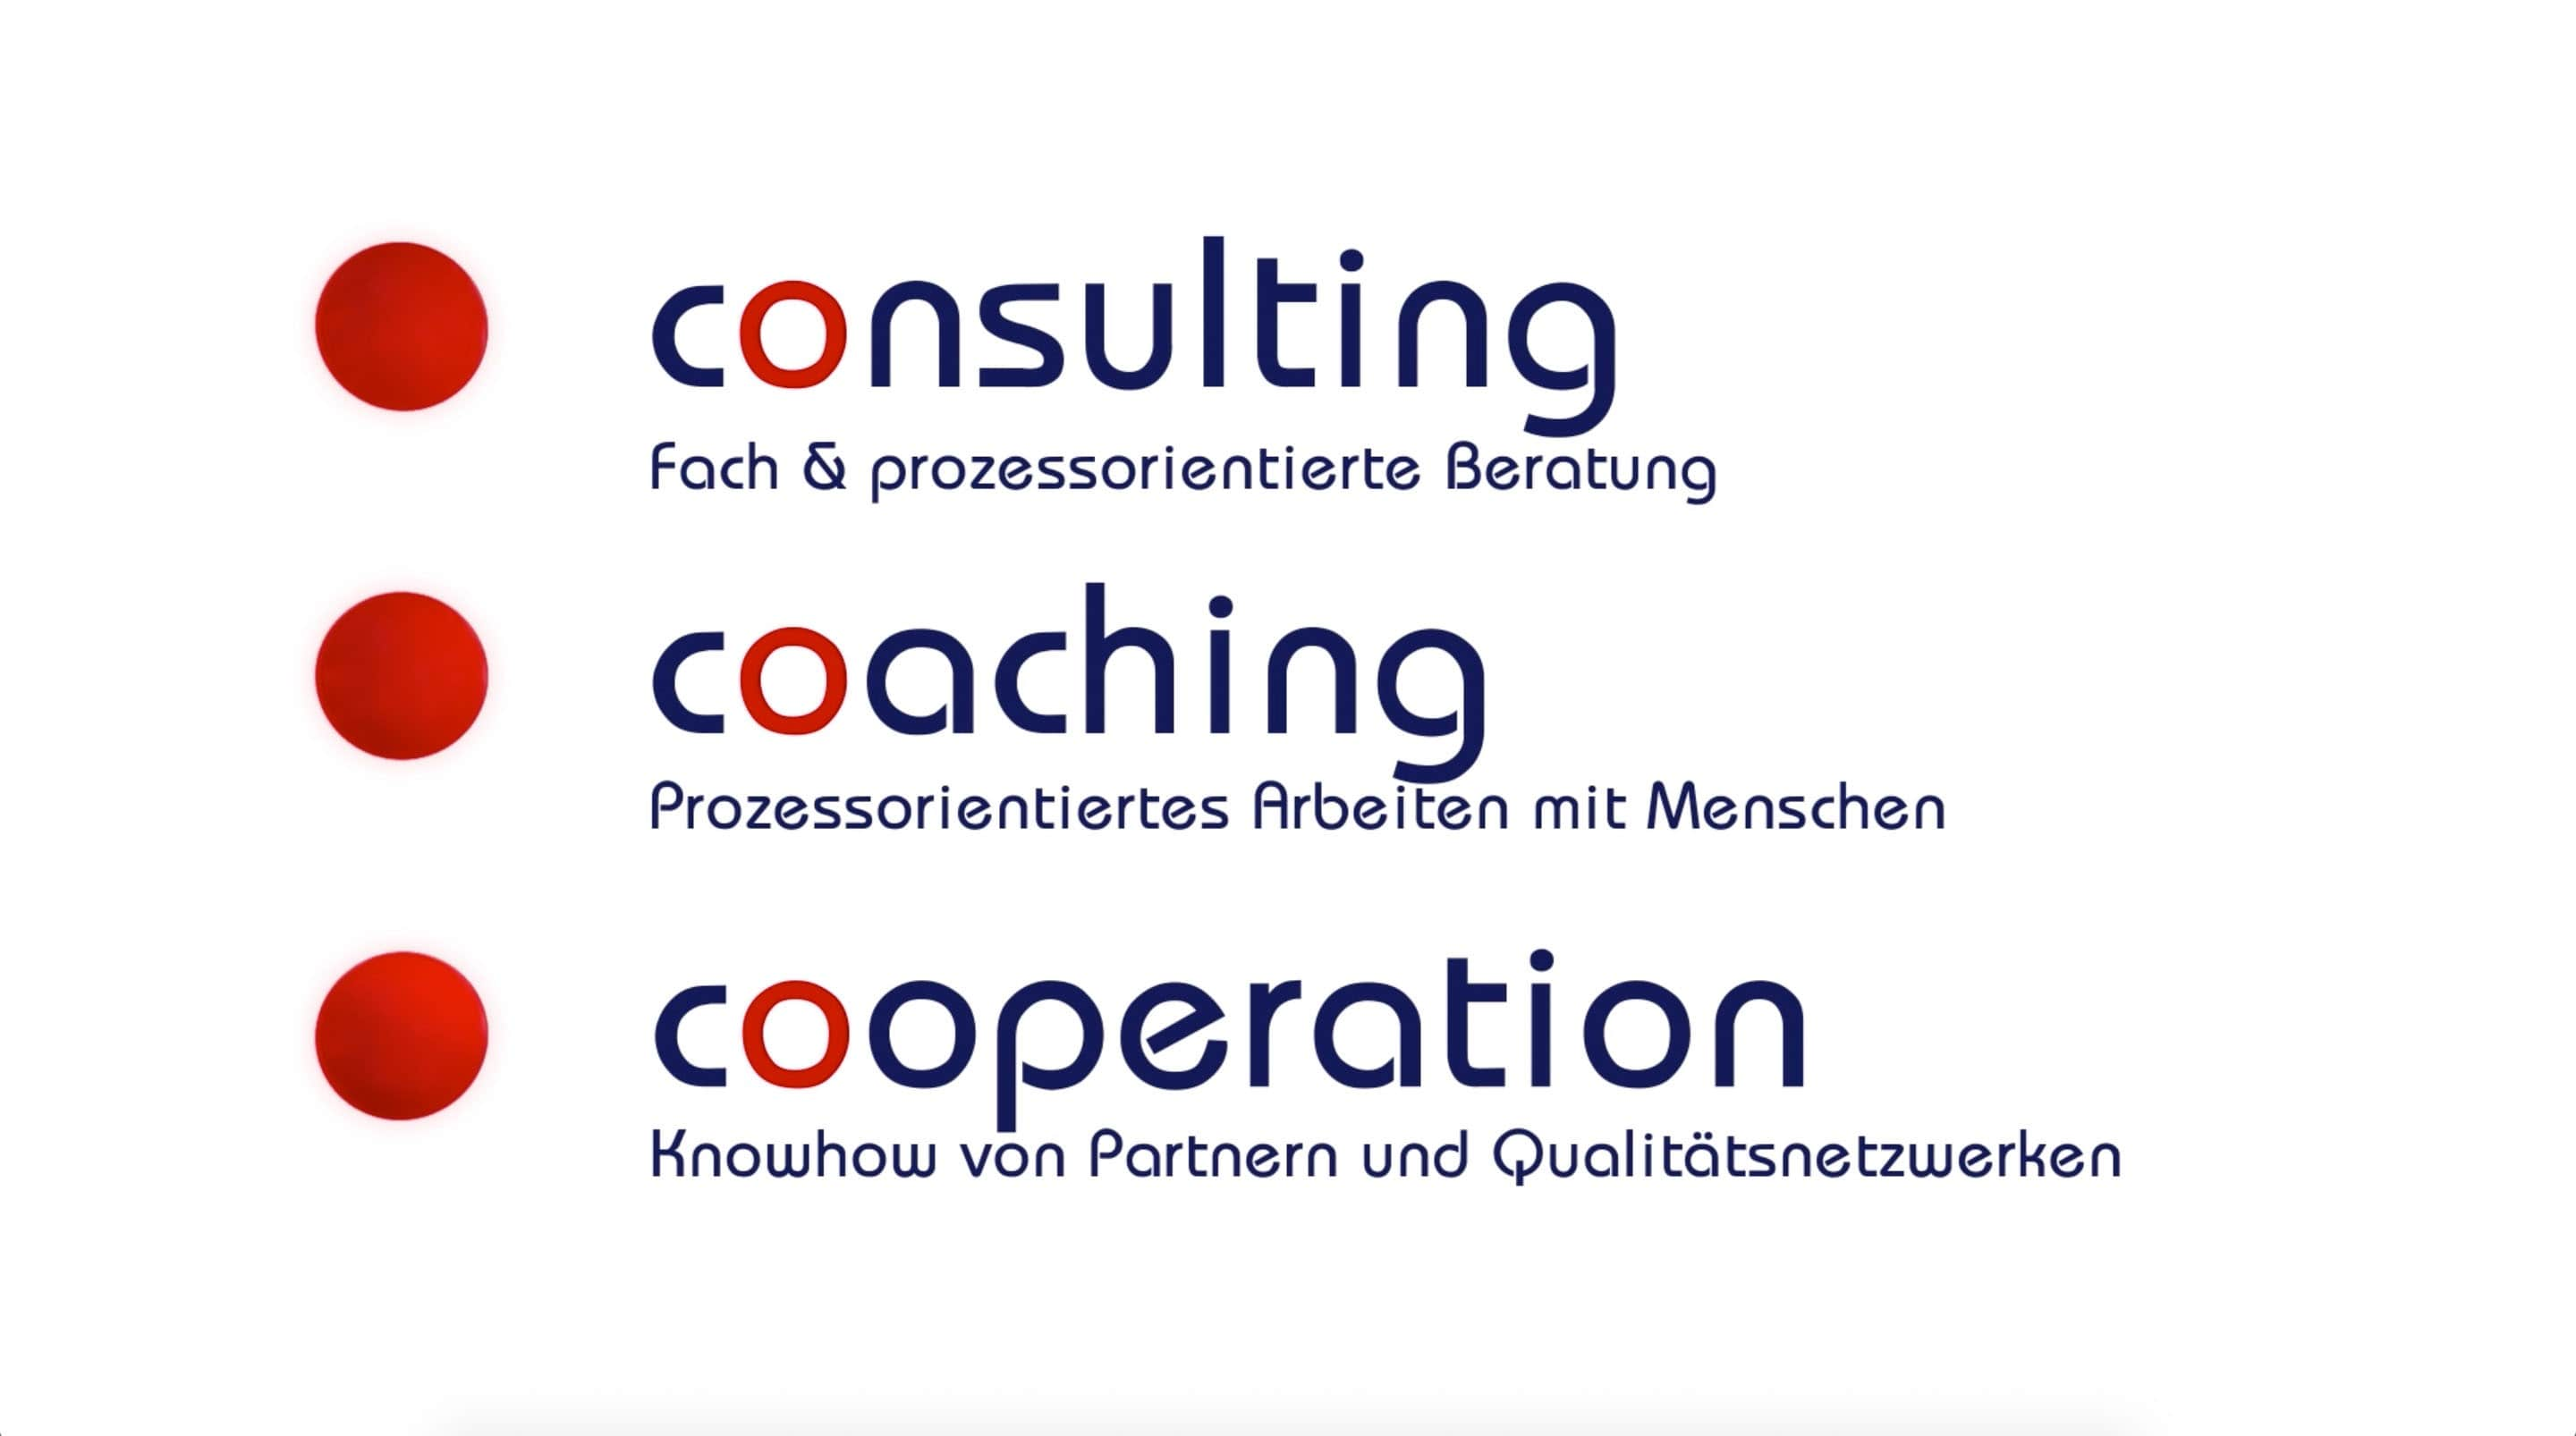 Consulting, Coaching, Cooperation